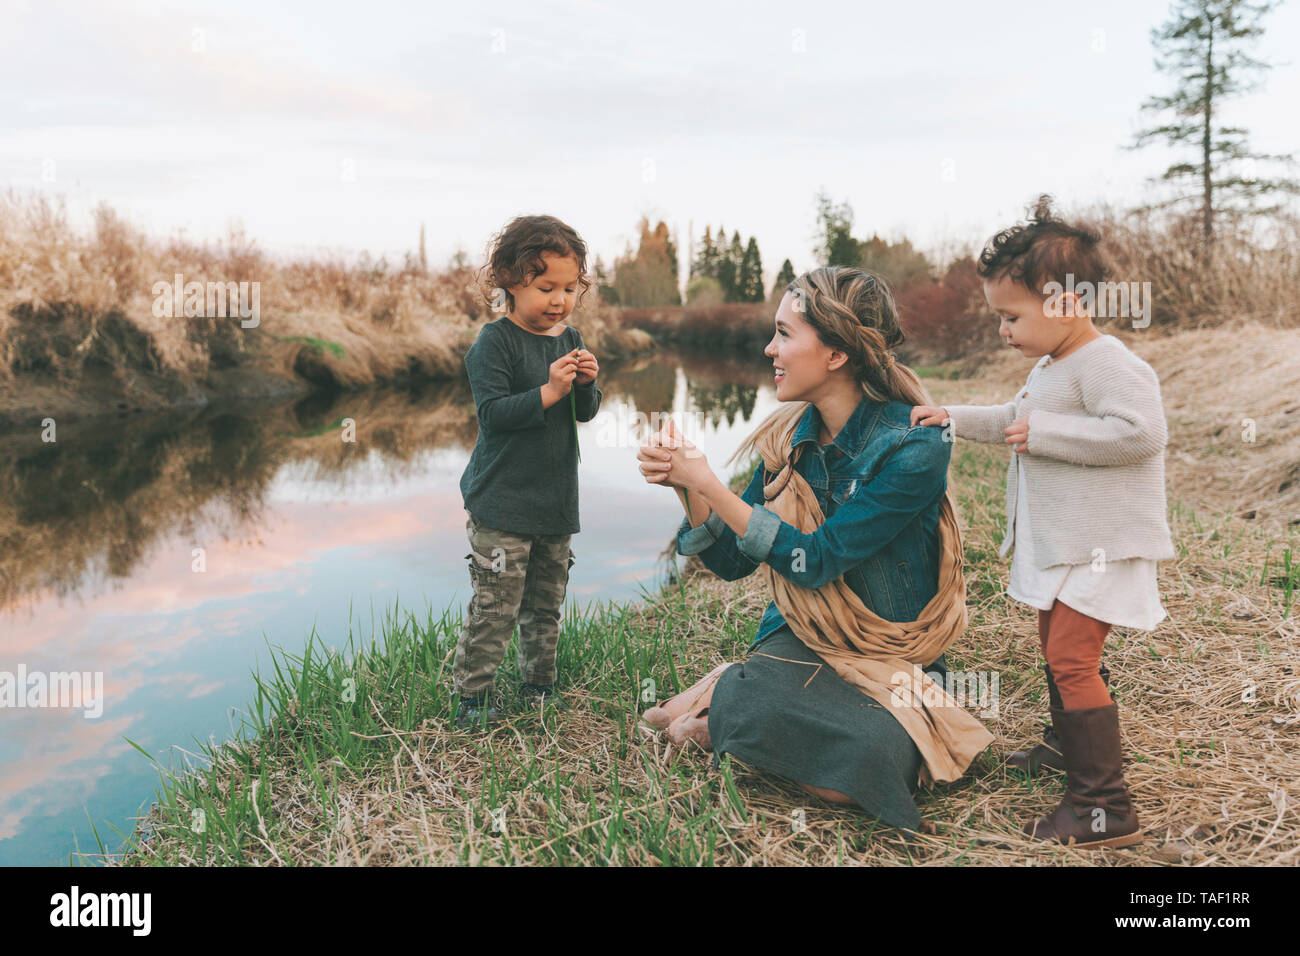 Maother and children playing with a grass blade at a river - Stock Image